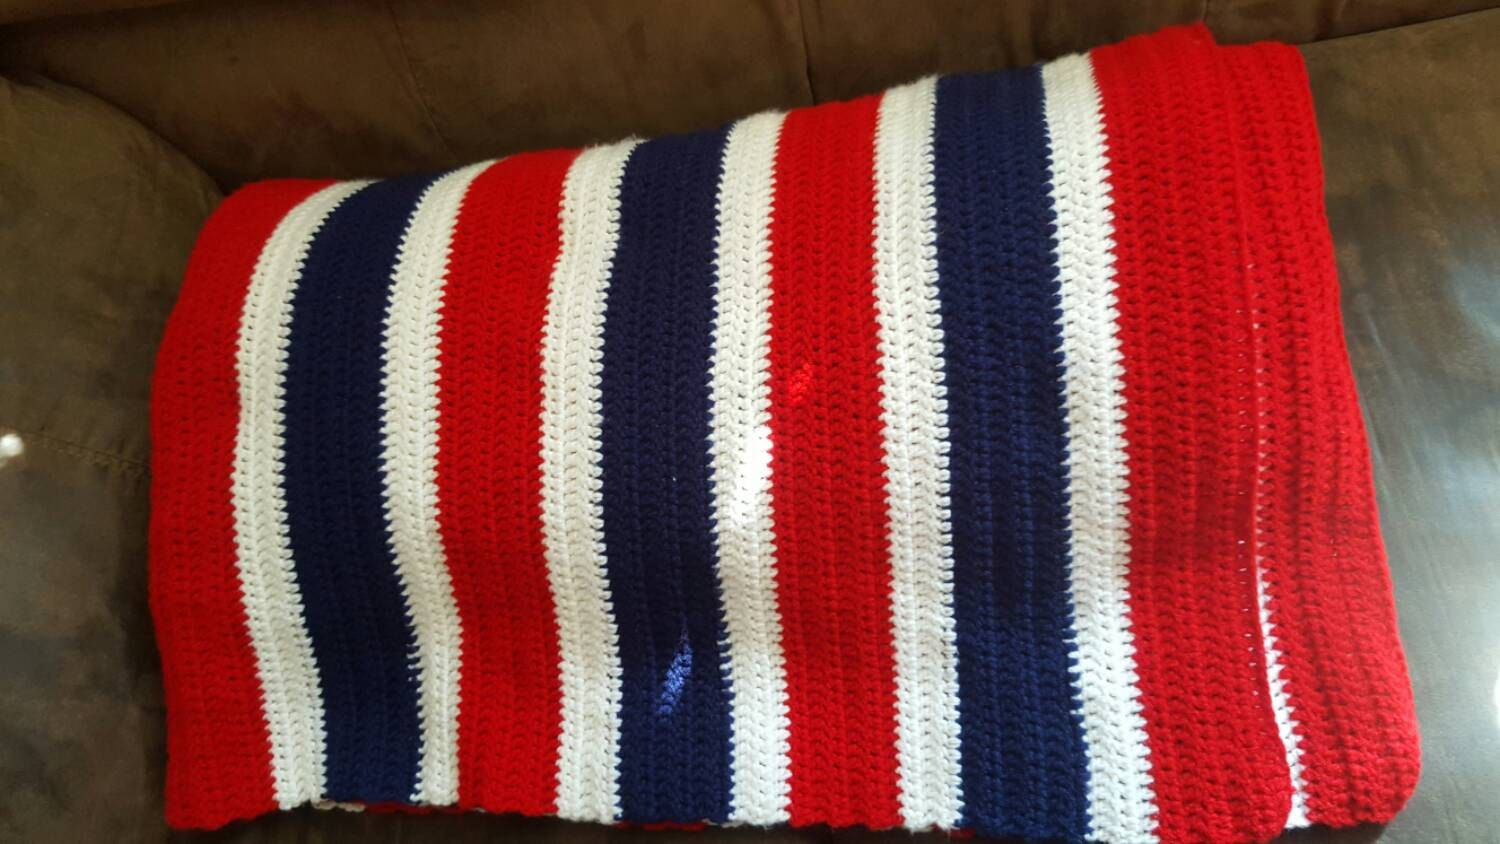 Red white and blue striped crochet blanket. Oversized throw. Crocheted blankets. Crochet American flag. American flag afghan. blanket original gifts handmade gifts gift ideas holiday decorating handmade blanket crochet blankets trending gift ideas winter finds Winter trends christmas trends Holiday gift guide Christmas gift 100.00 USD #goriani